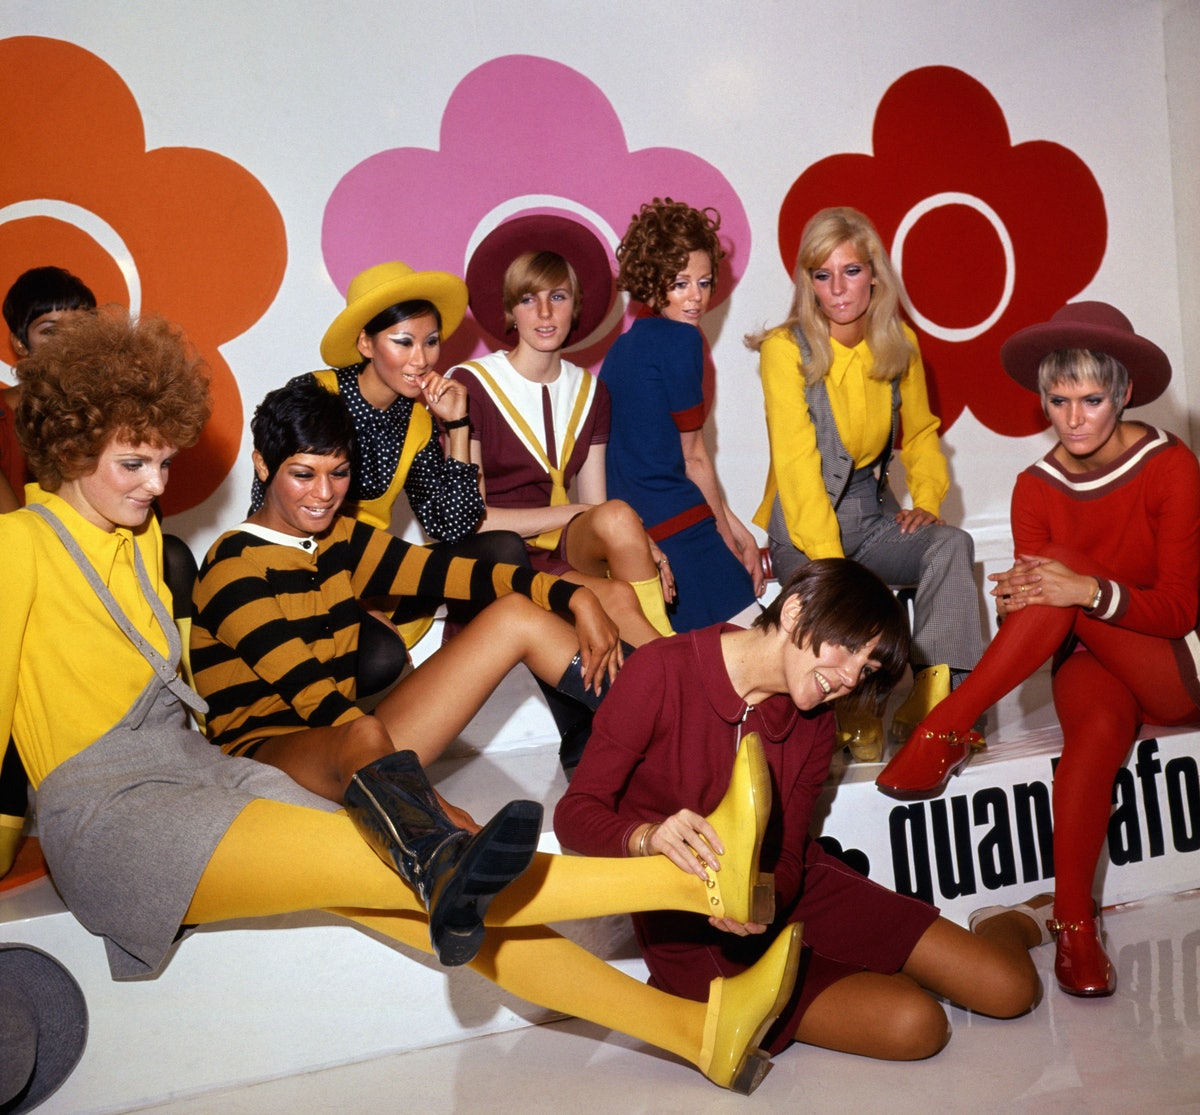 Mary Quant - London - 1967